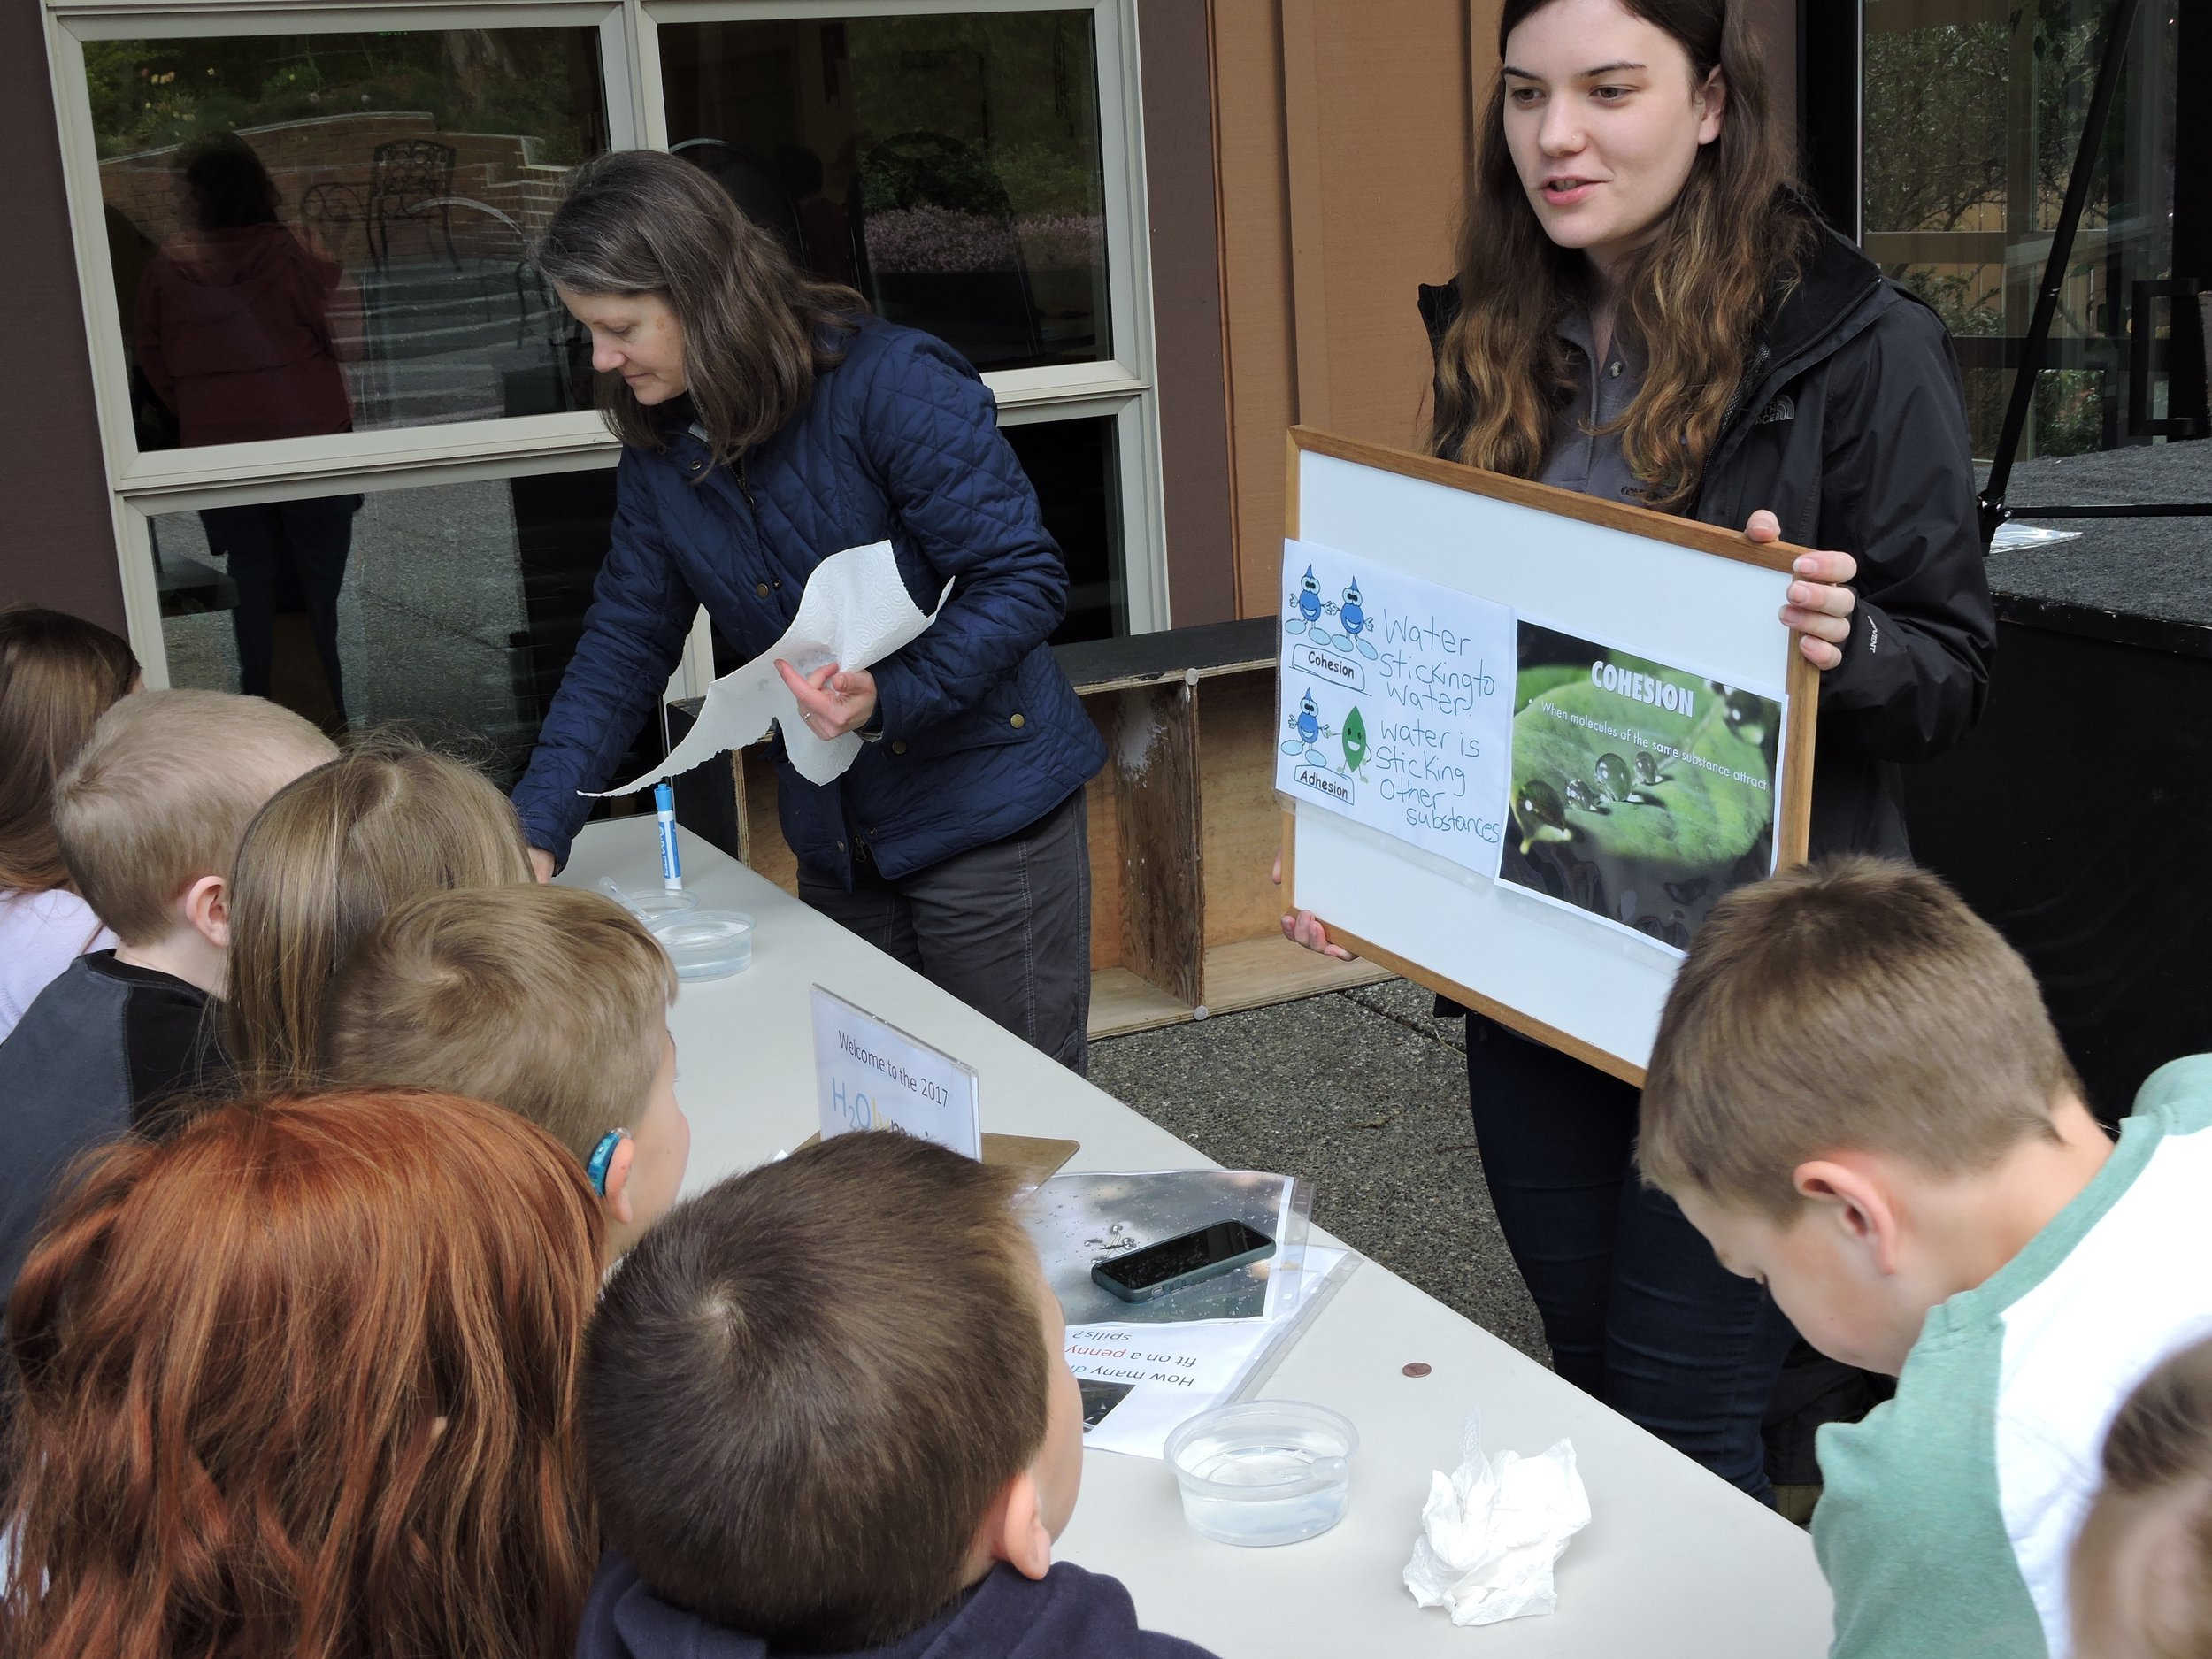 Ashley Shattuck, WCC Restoration Specialist and Kathryn Wells teach students about water cohesion and adhesion before they begin balancing water drops on a penny to see cohesion first-hand!